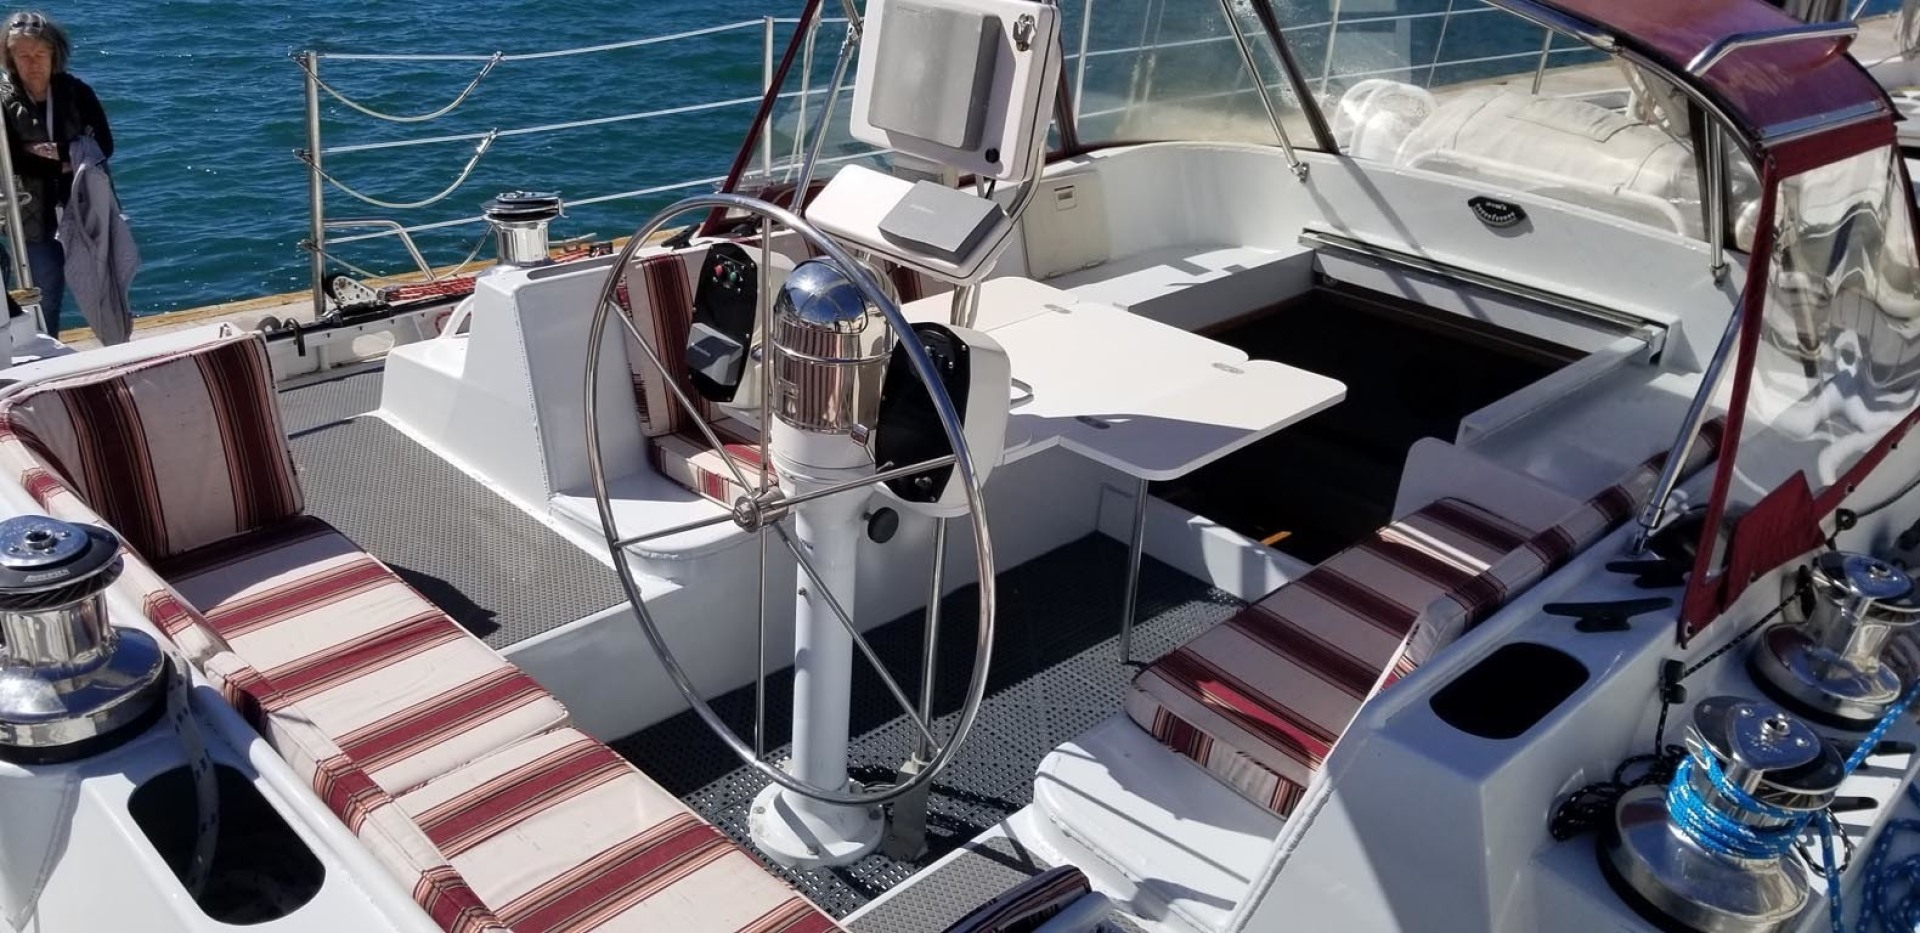 Polar-Beluga 2000-Northern Dream Currently Cruising-Mexico-Cockpit Seating, Steering Pedestal, Cabin Entry-1339792 | Thumbnail